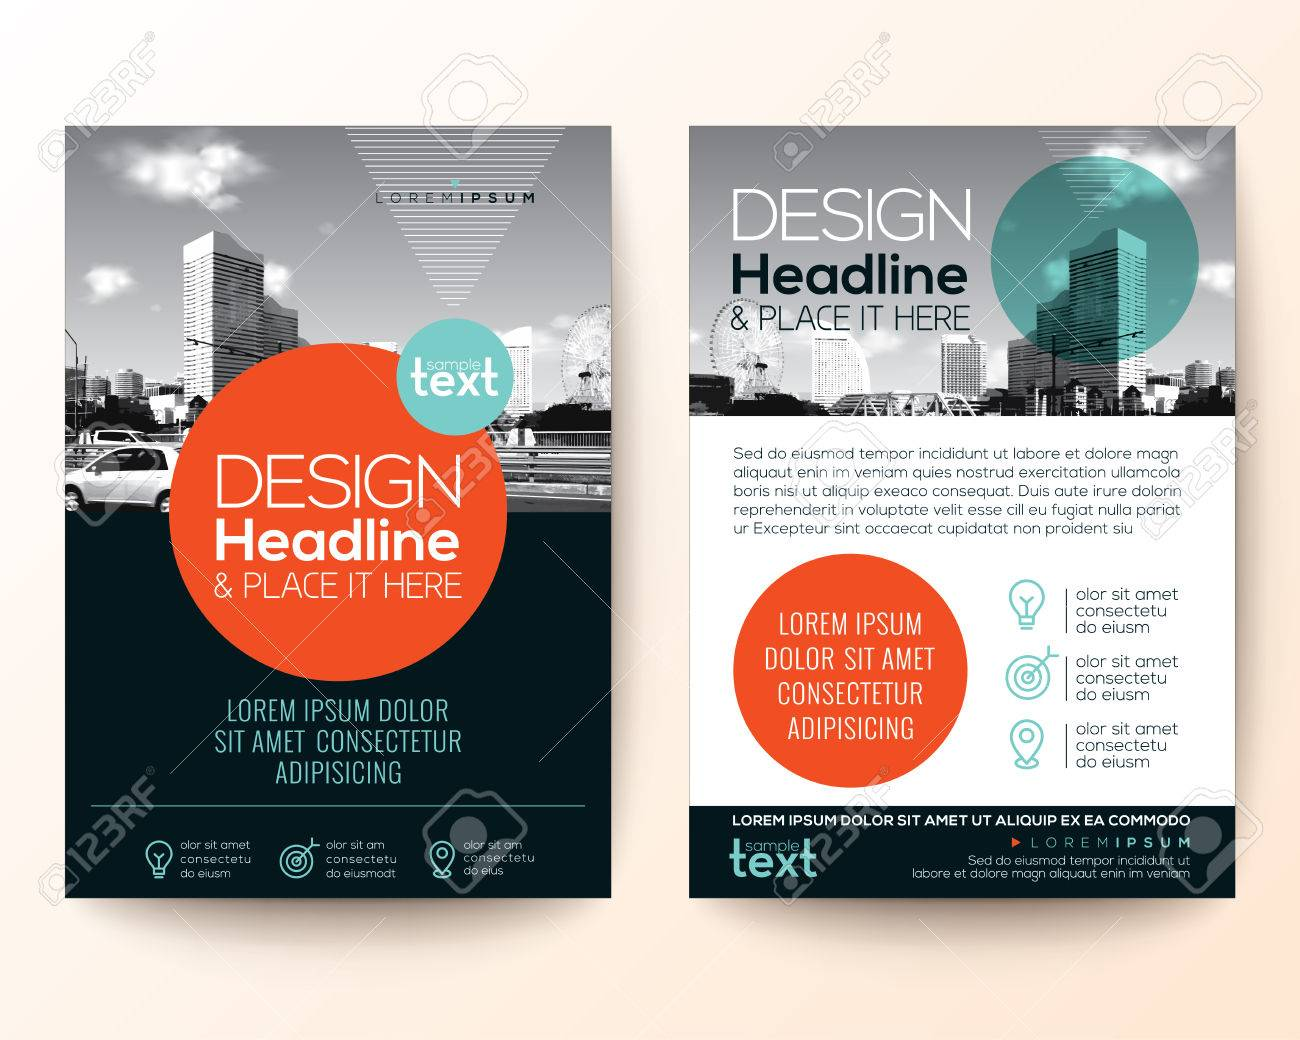 poster flyer pamphlet brochure cover design layout with circle